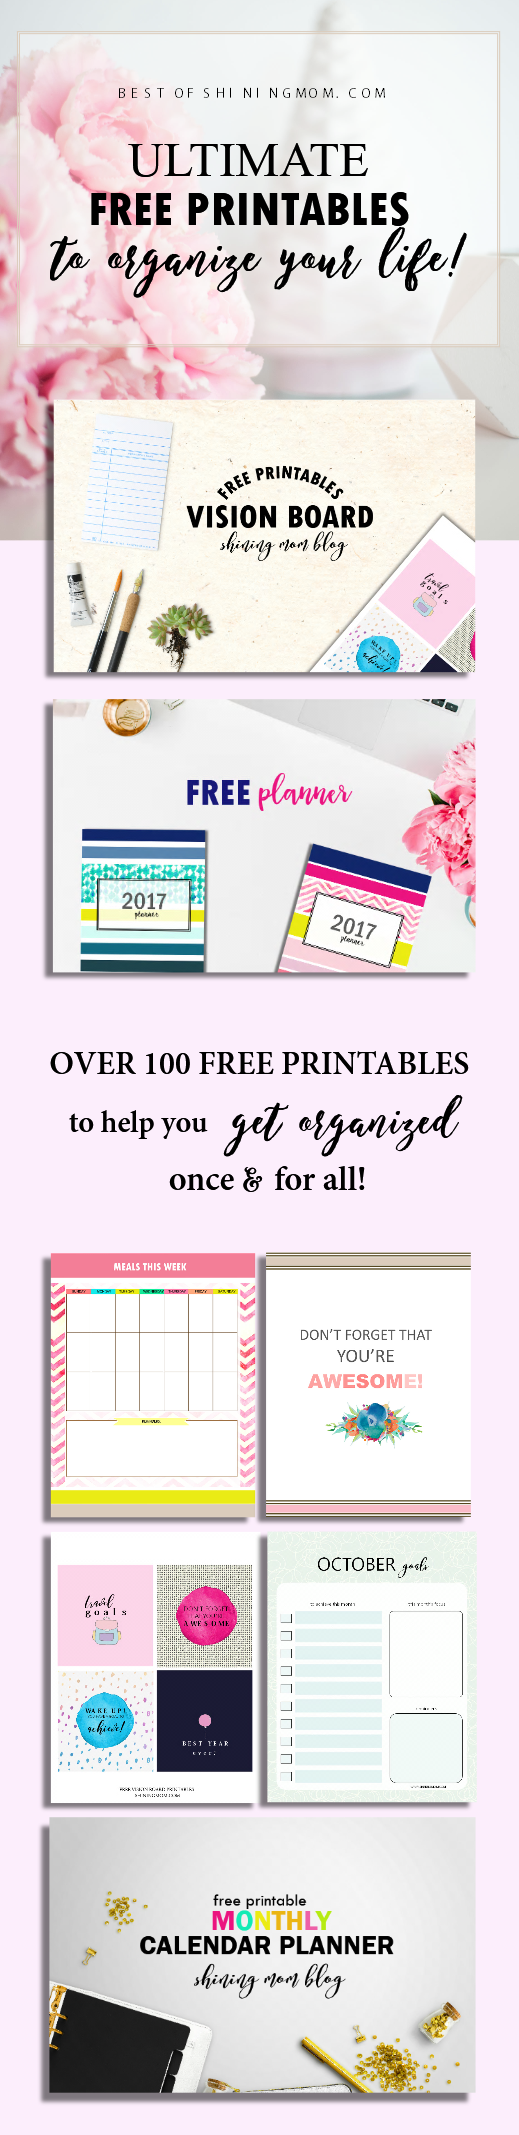 free printables to help you organize your life